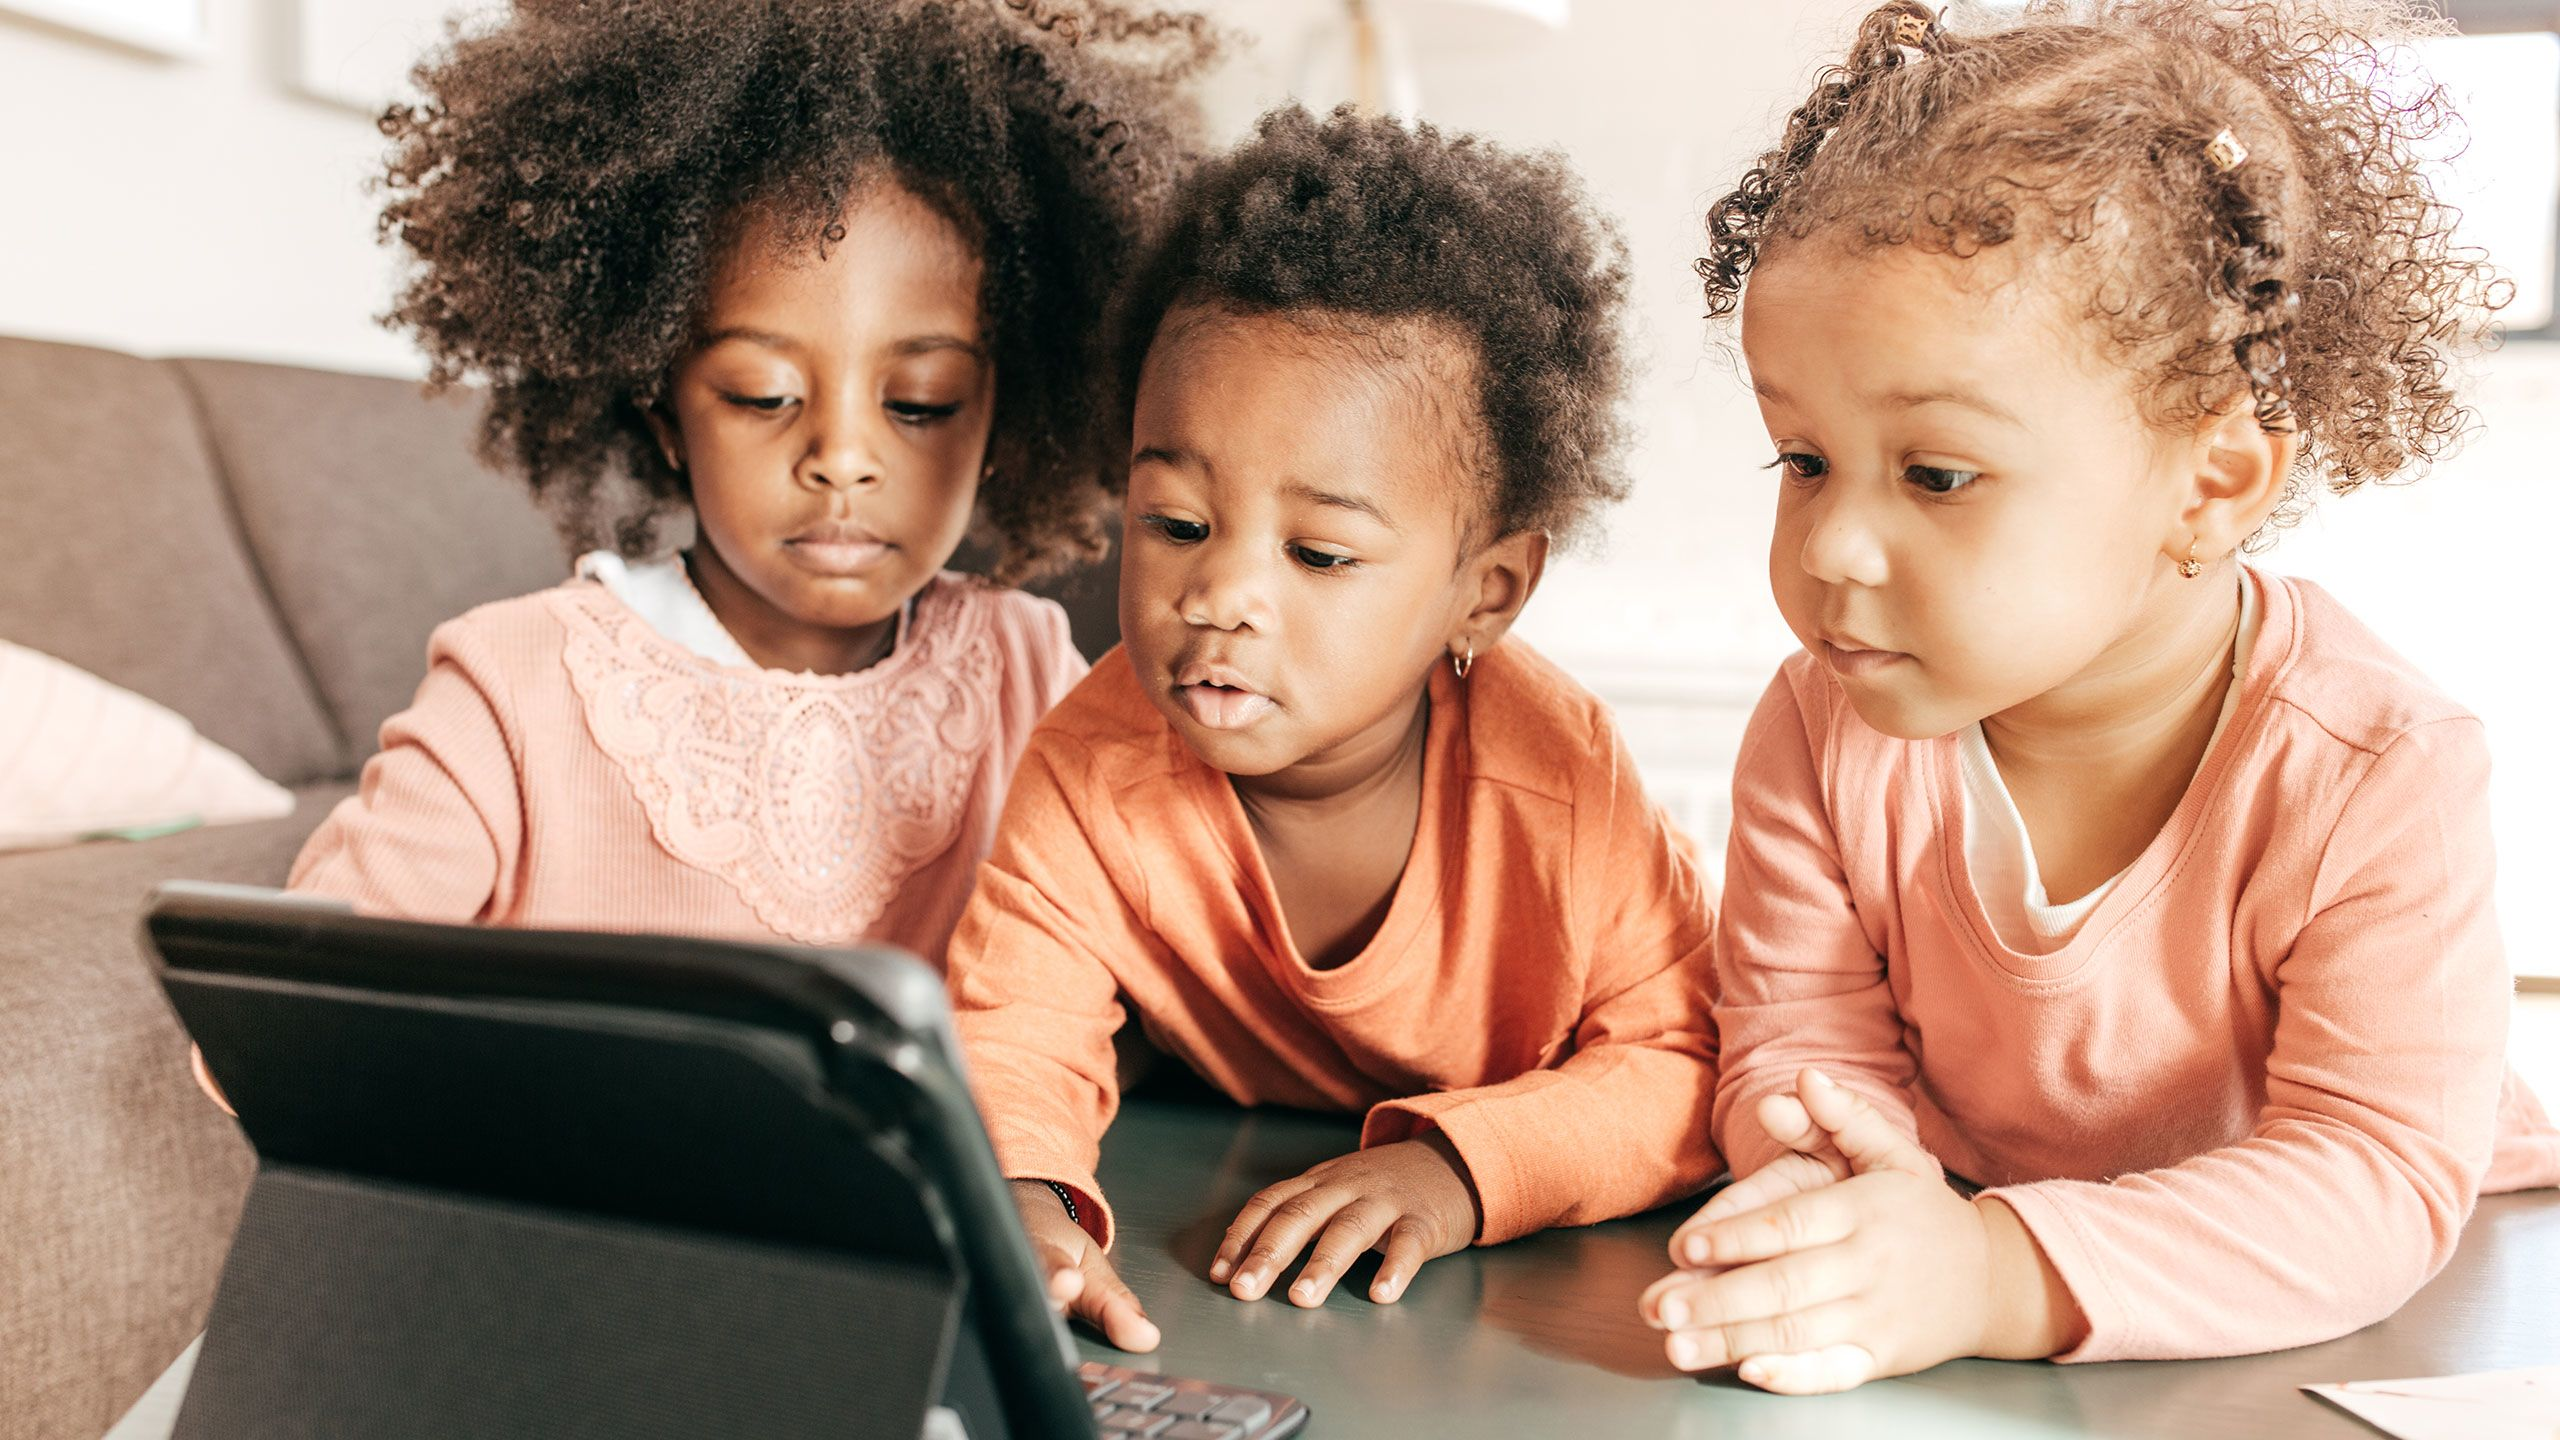 Toddlers and Tech: How Young Is Too Young?